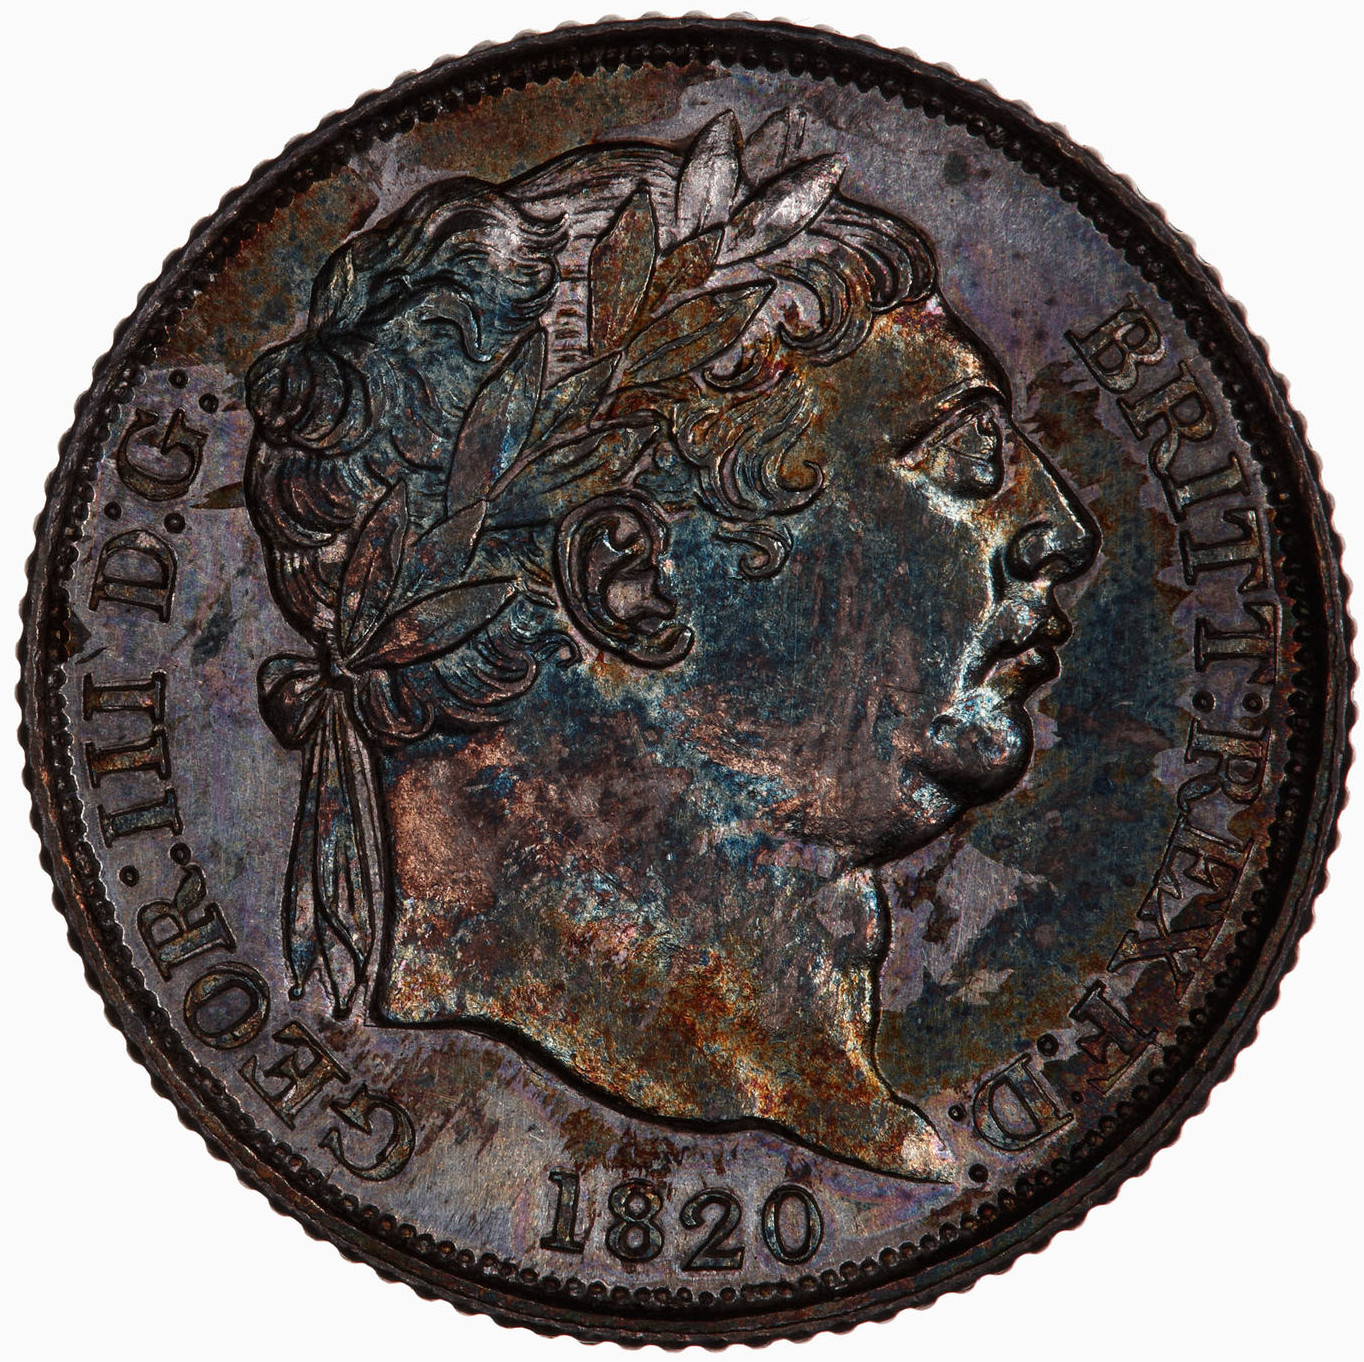 Sixpence 1820: Photo Coin - Sixpence, George III, Great Britain, 1820